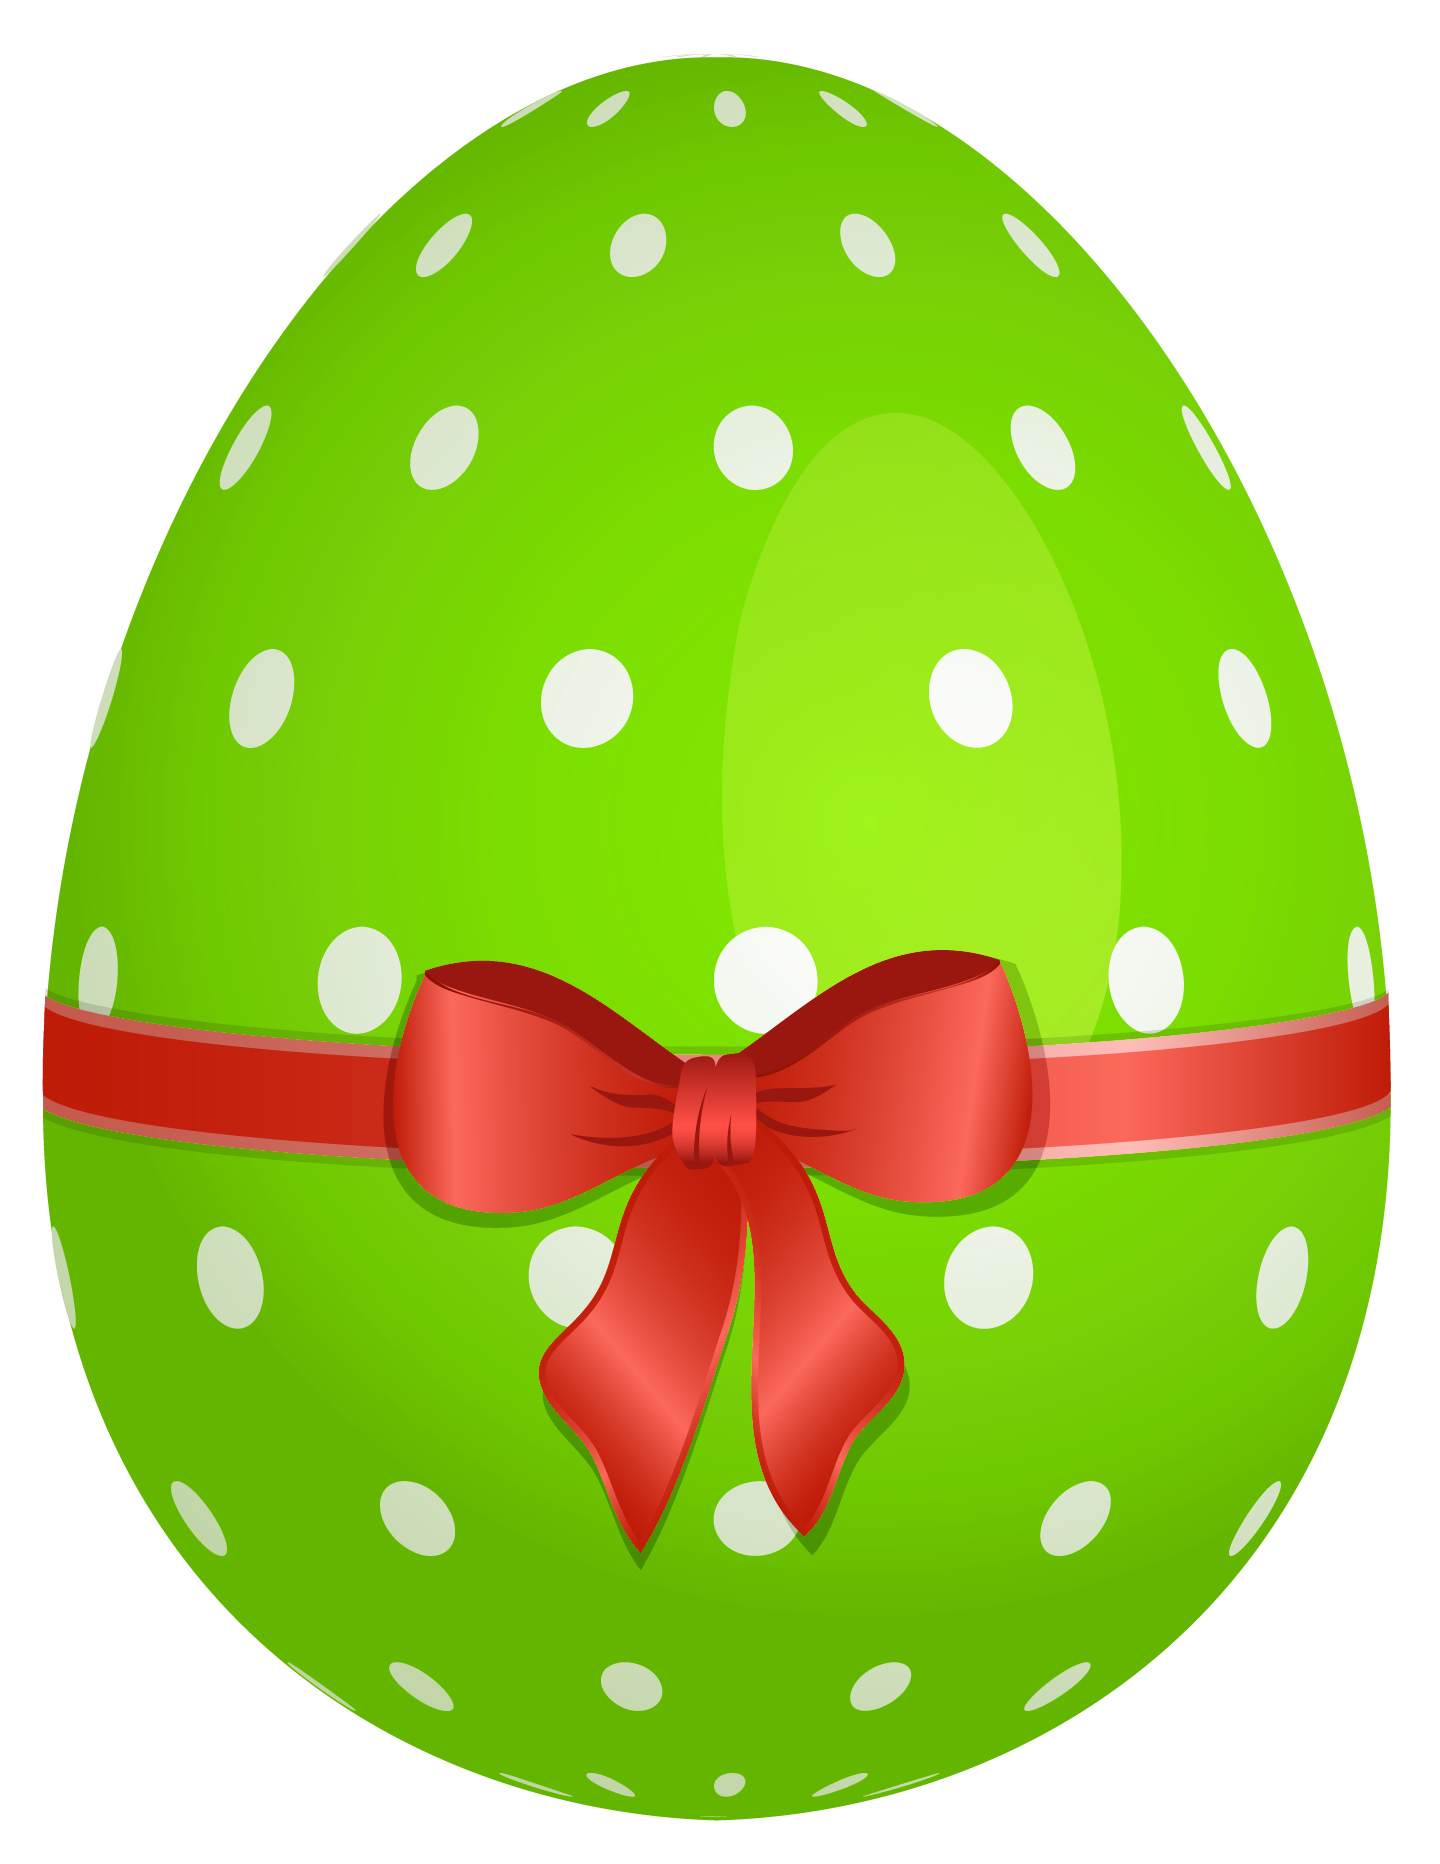 medium resolution of free download microsoft gallery easter eggs clipart for your creation